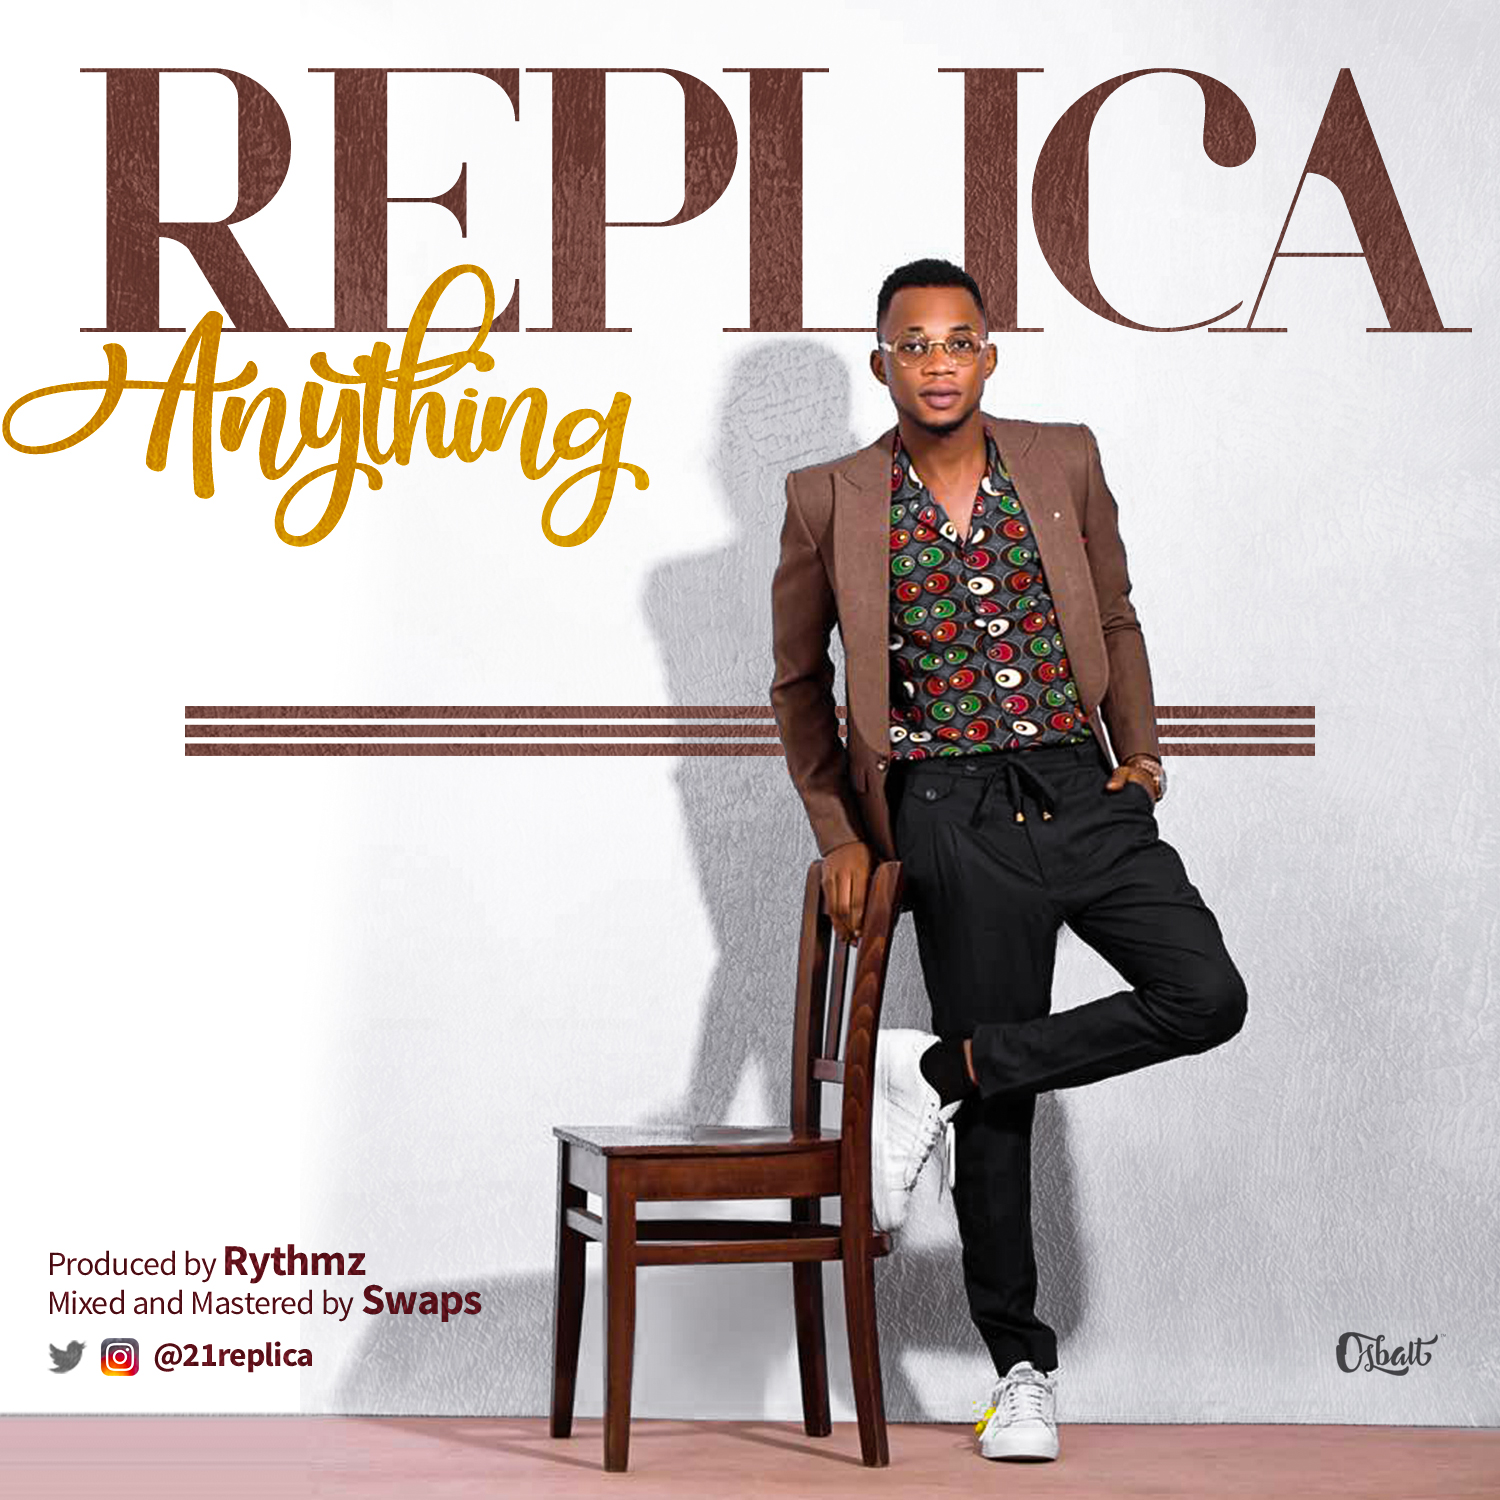 Replica - Anything